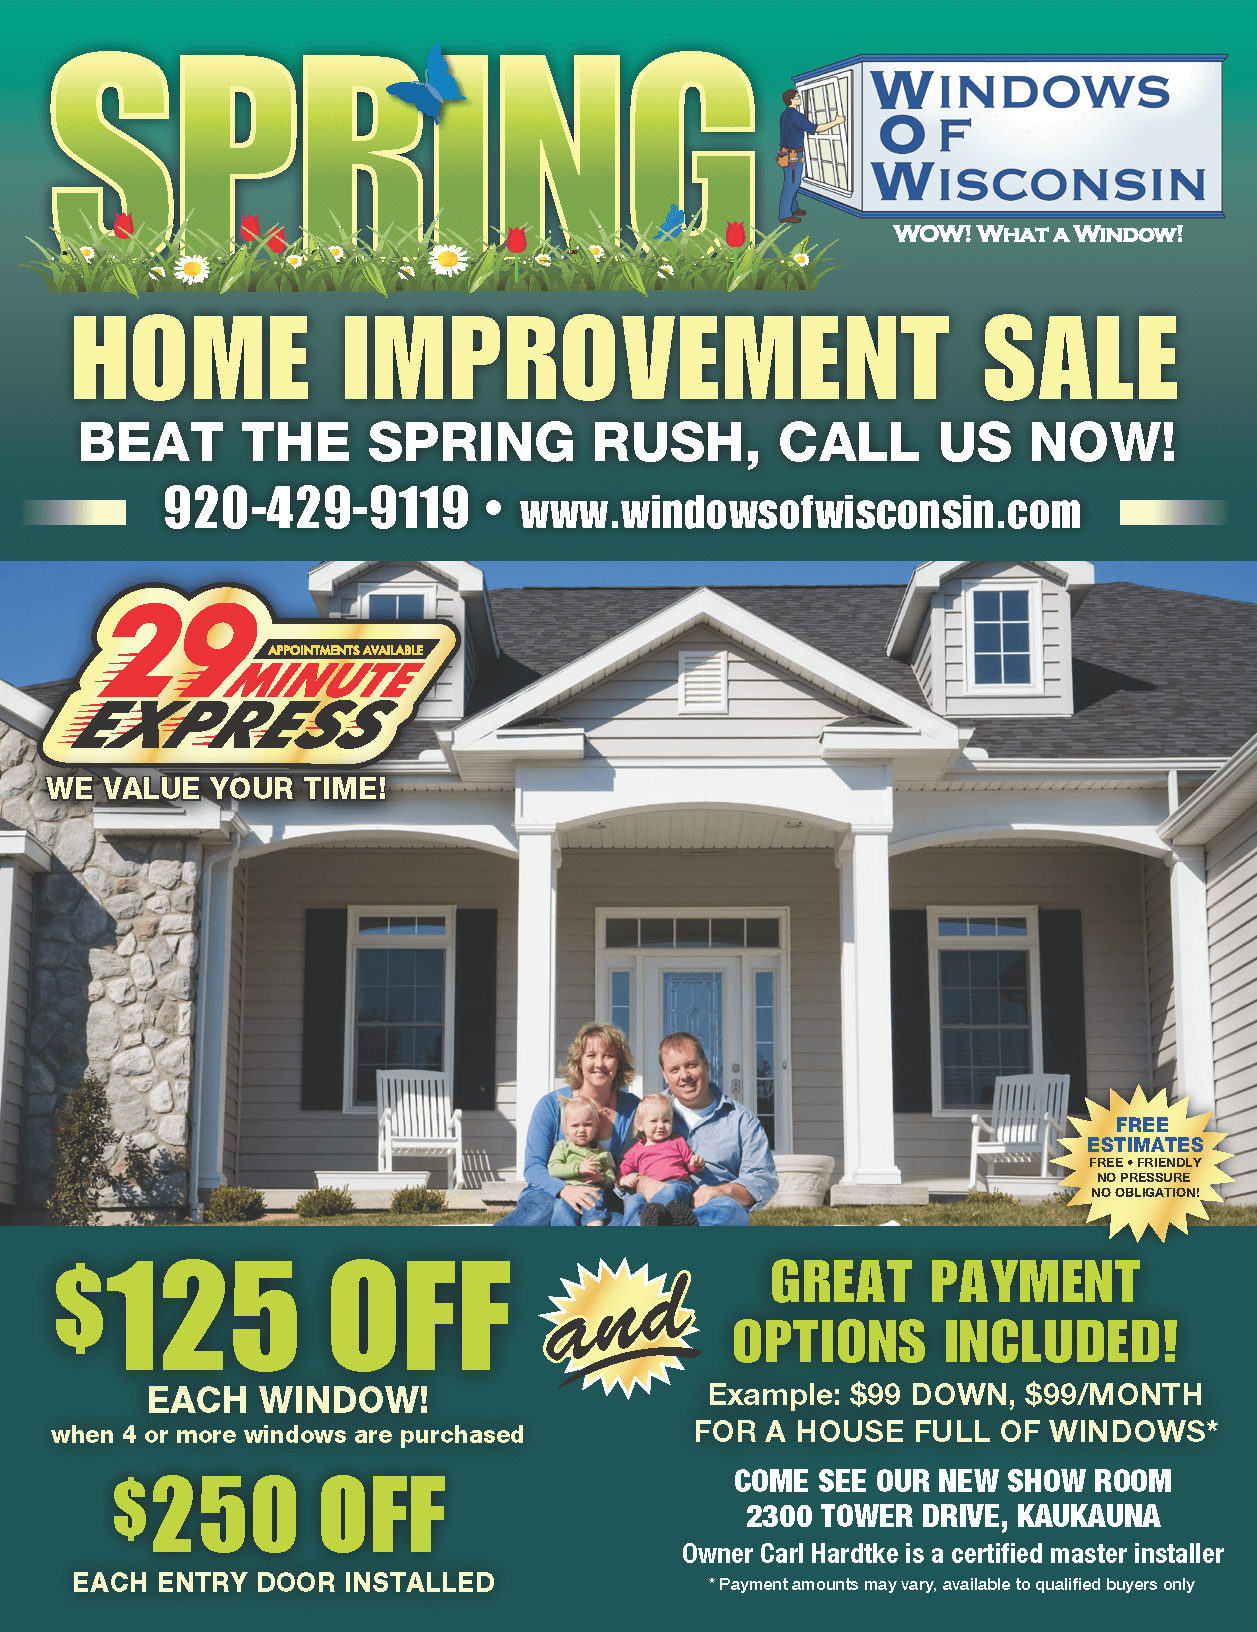 Spring window special. $125 off each window, $250 off each entry door